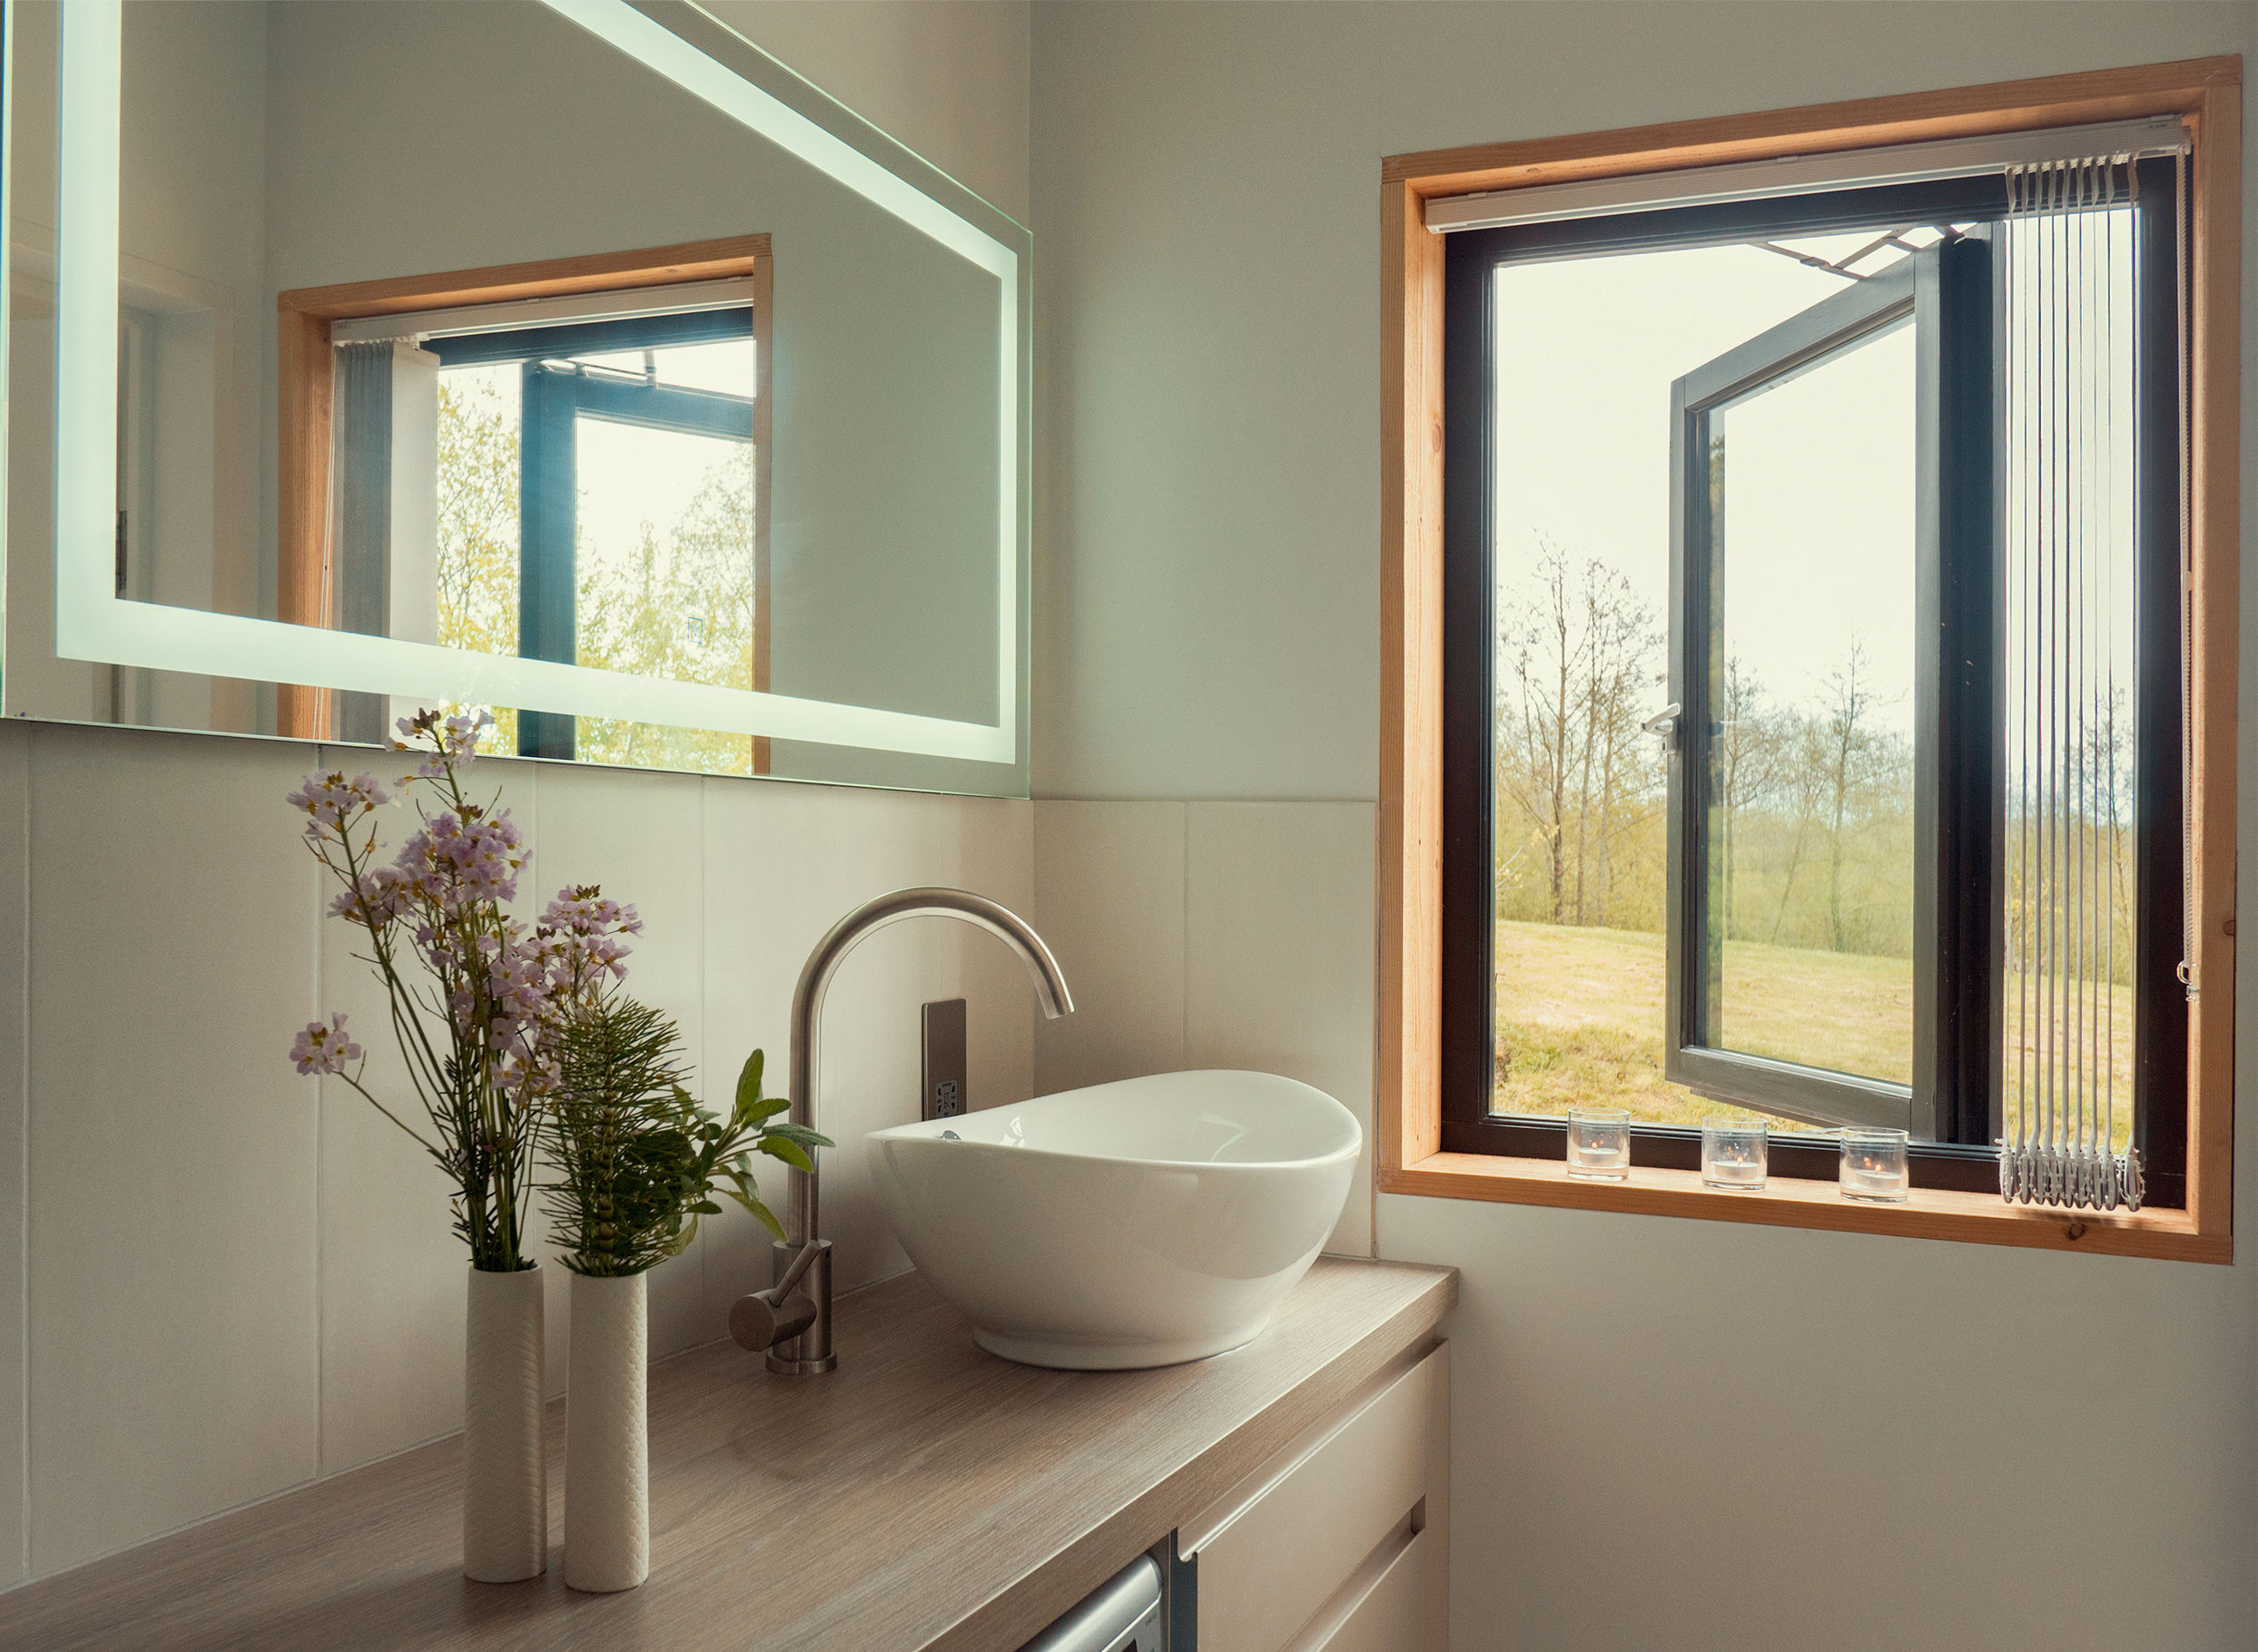 The shower room is en-suite, with a large walk in shower, WC, illuminated de-misting mirror and countertop basin.